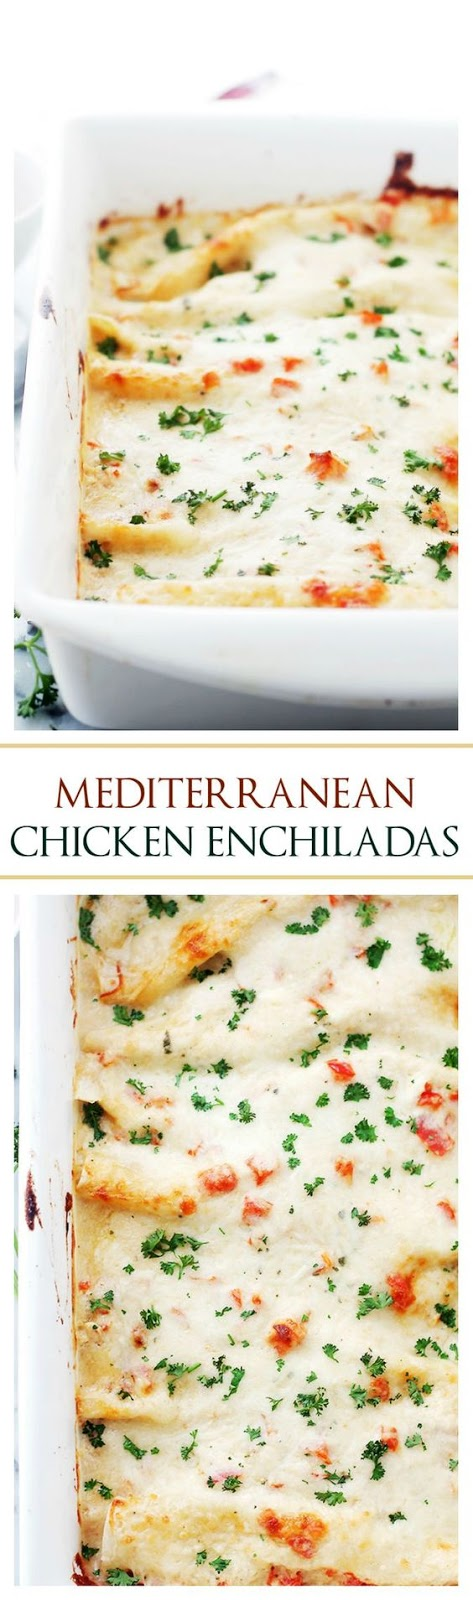 Mediterranean White Chicken Enchiladas